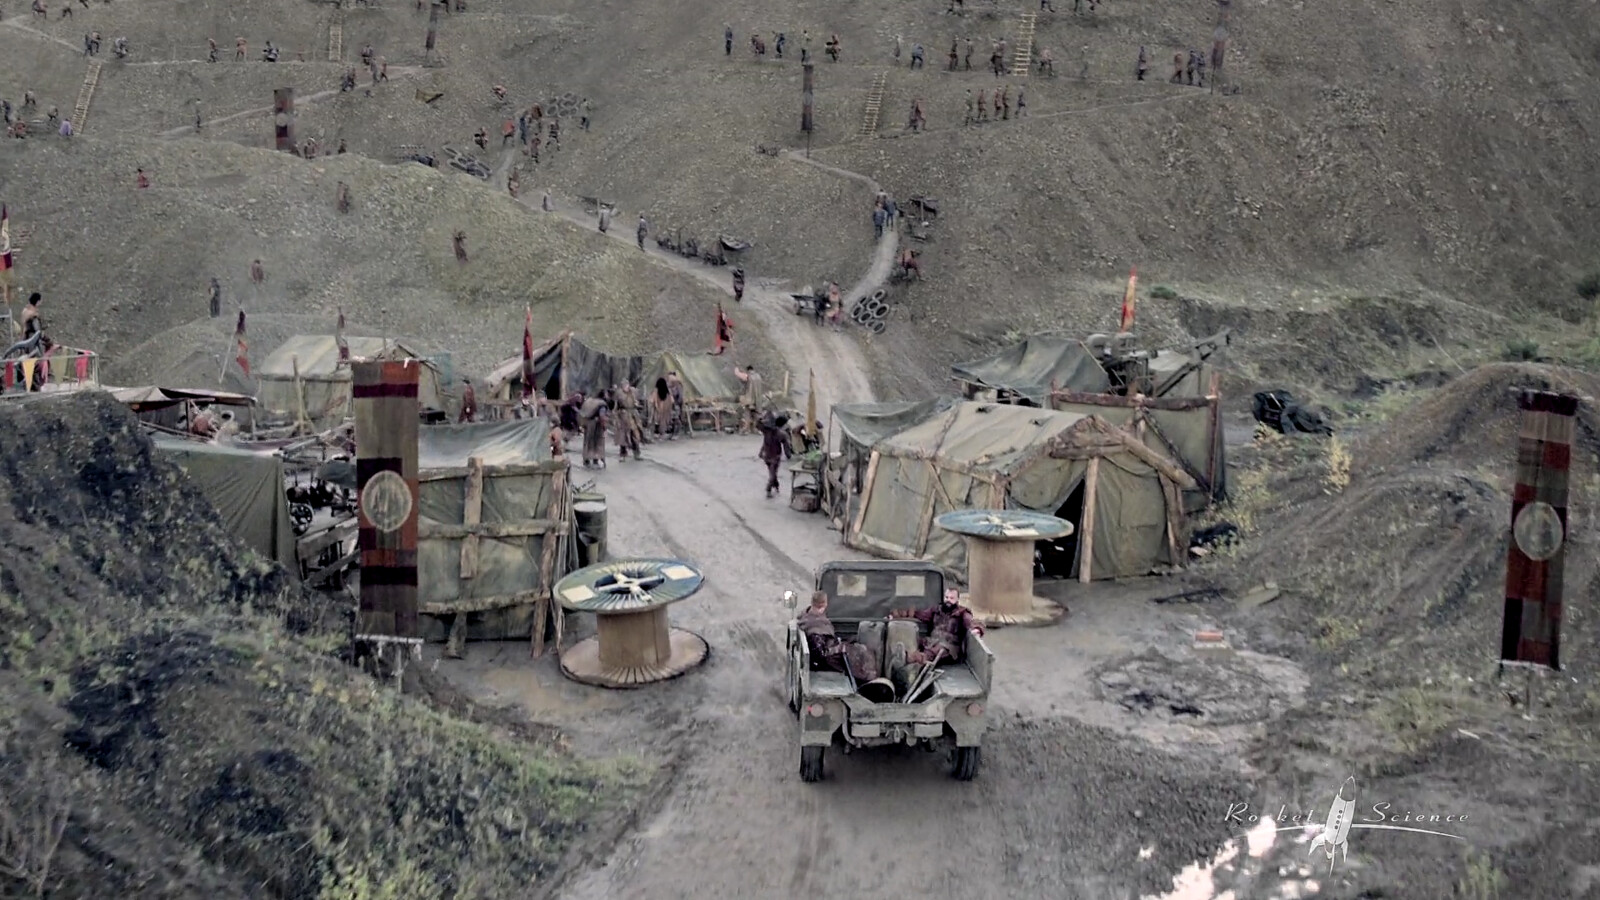 Into the Badlands Season 3 - Digi-Doubles, Excavation Tables and flags for the Quarry Scene